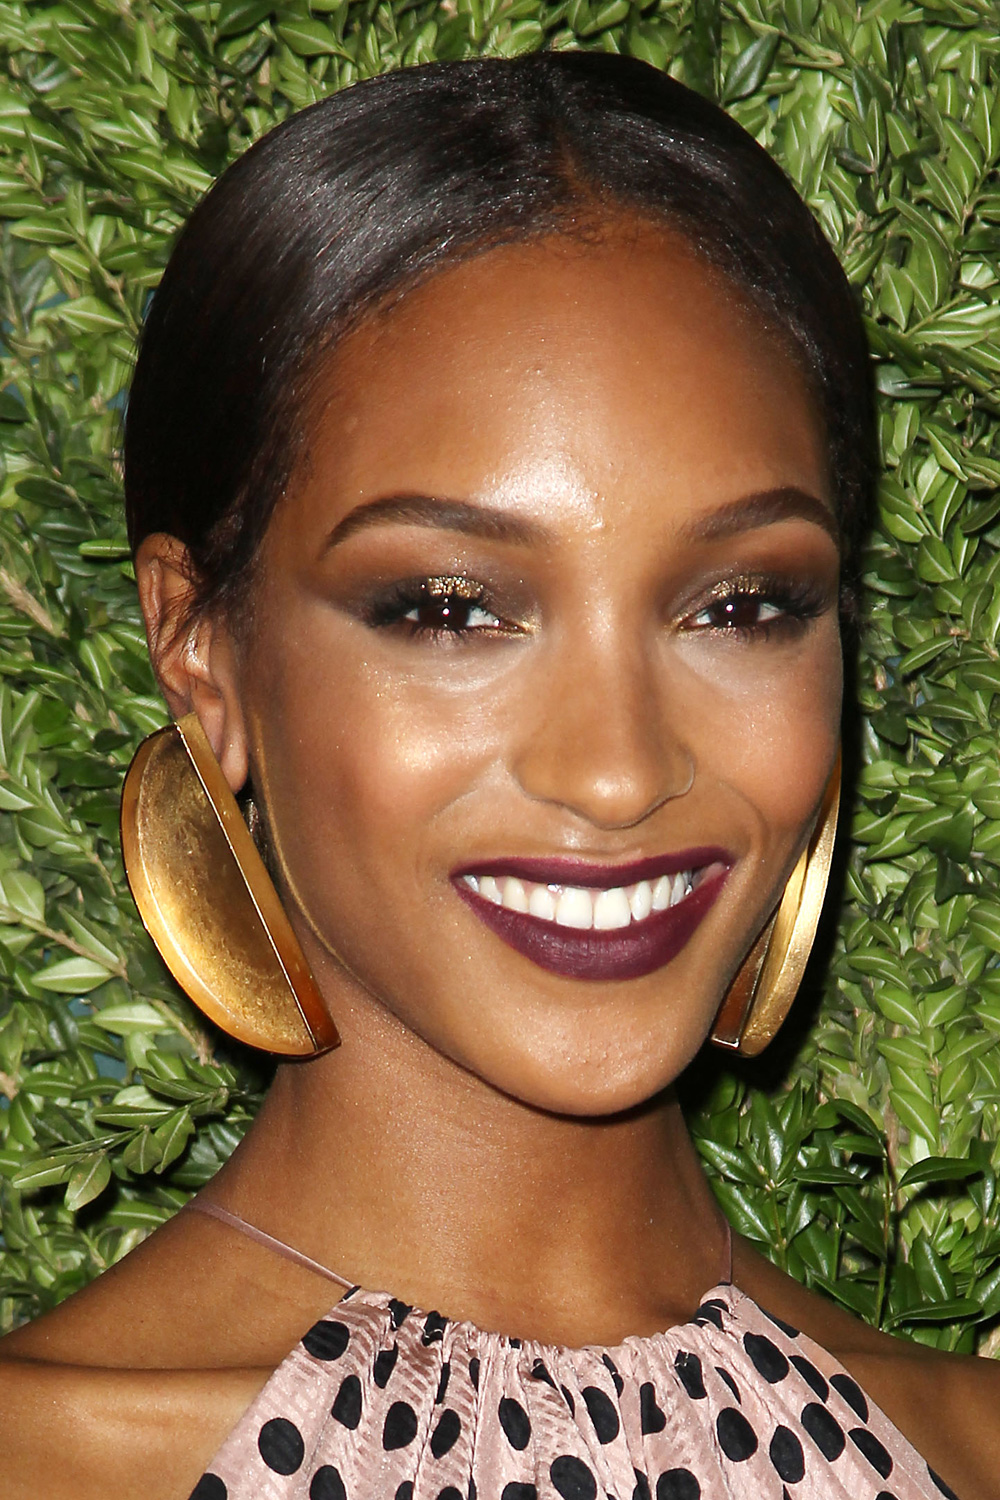 Jourdan-Dunn-Fashion-Celebrity-Short-Hair-Trend